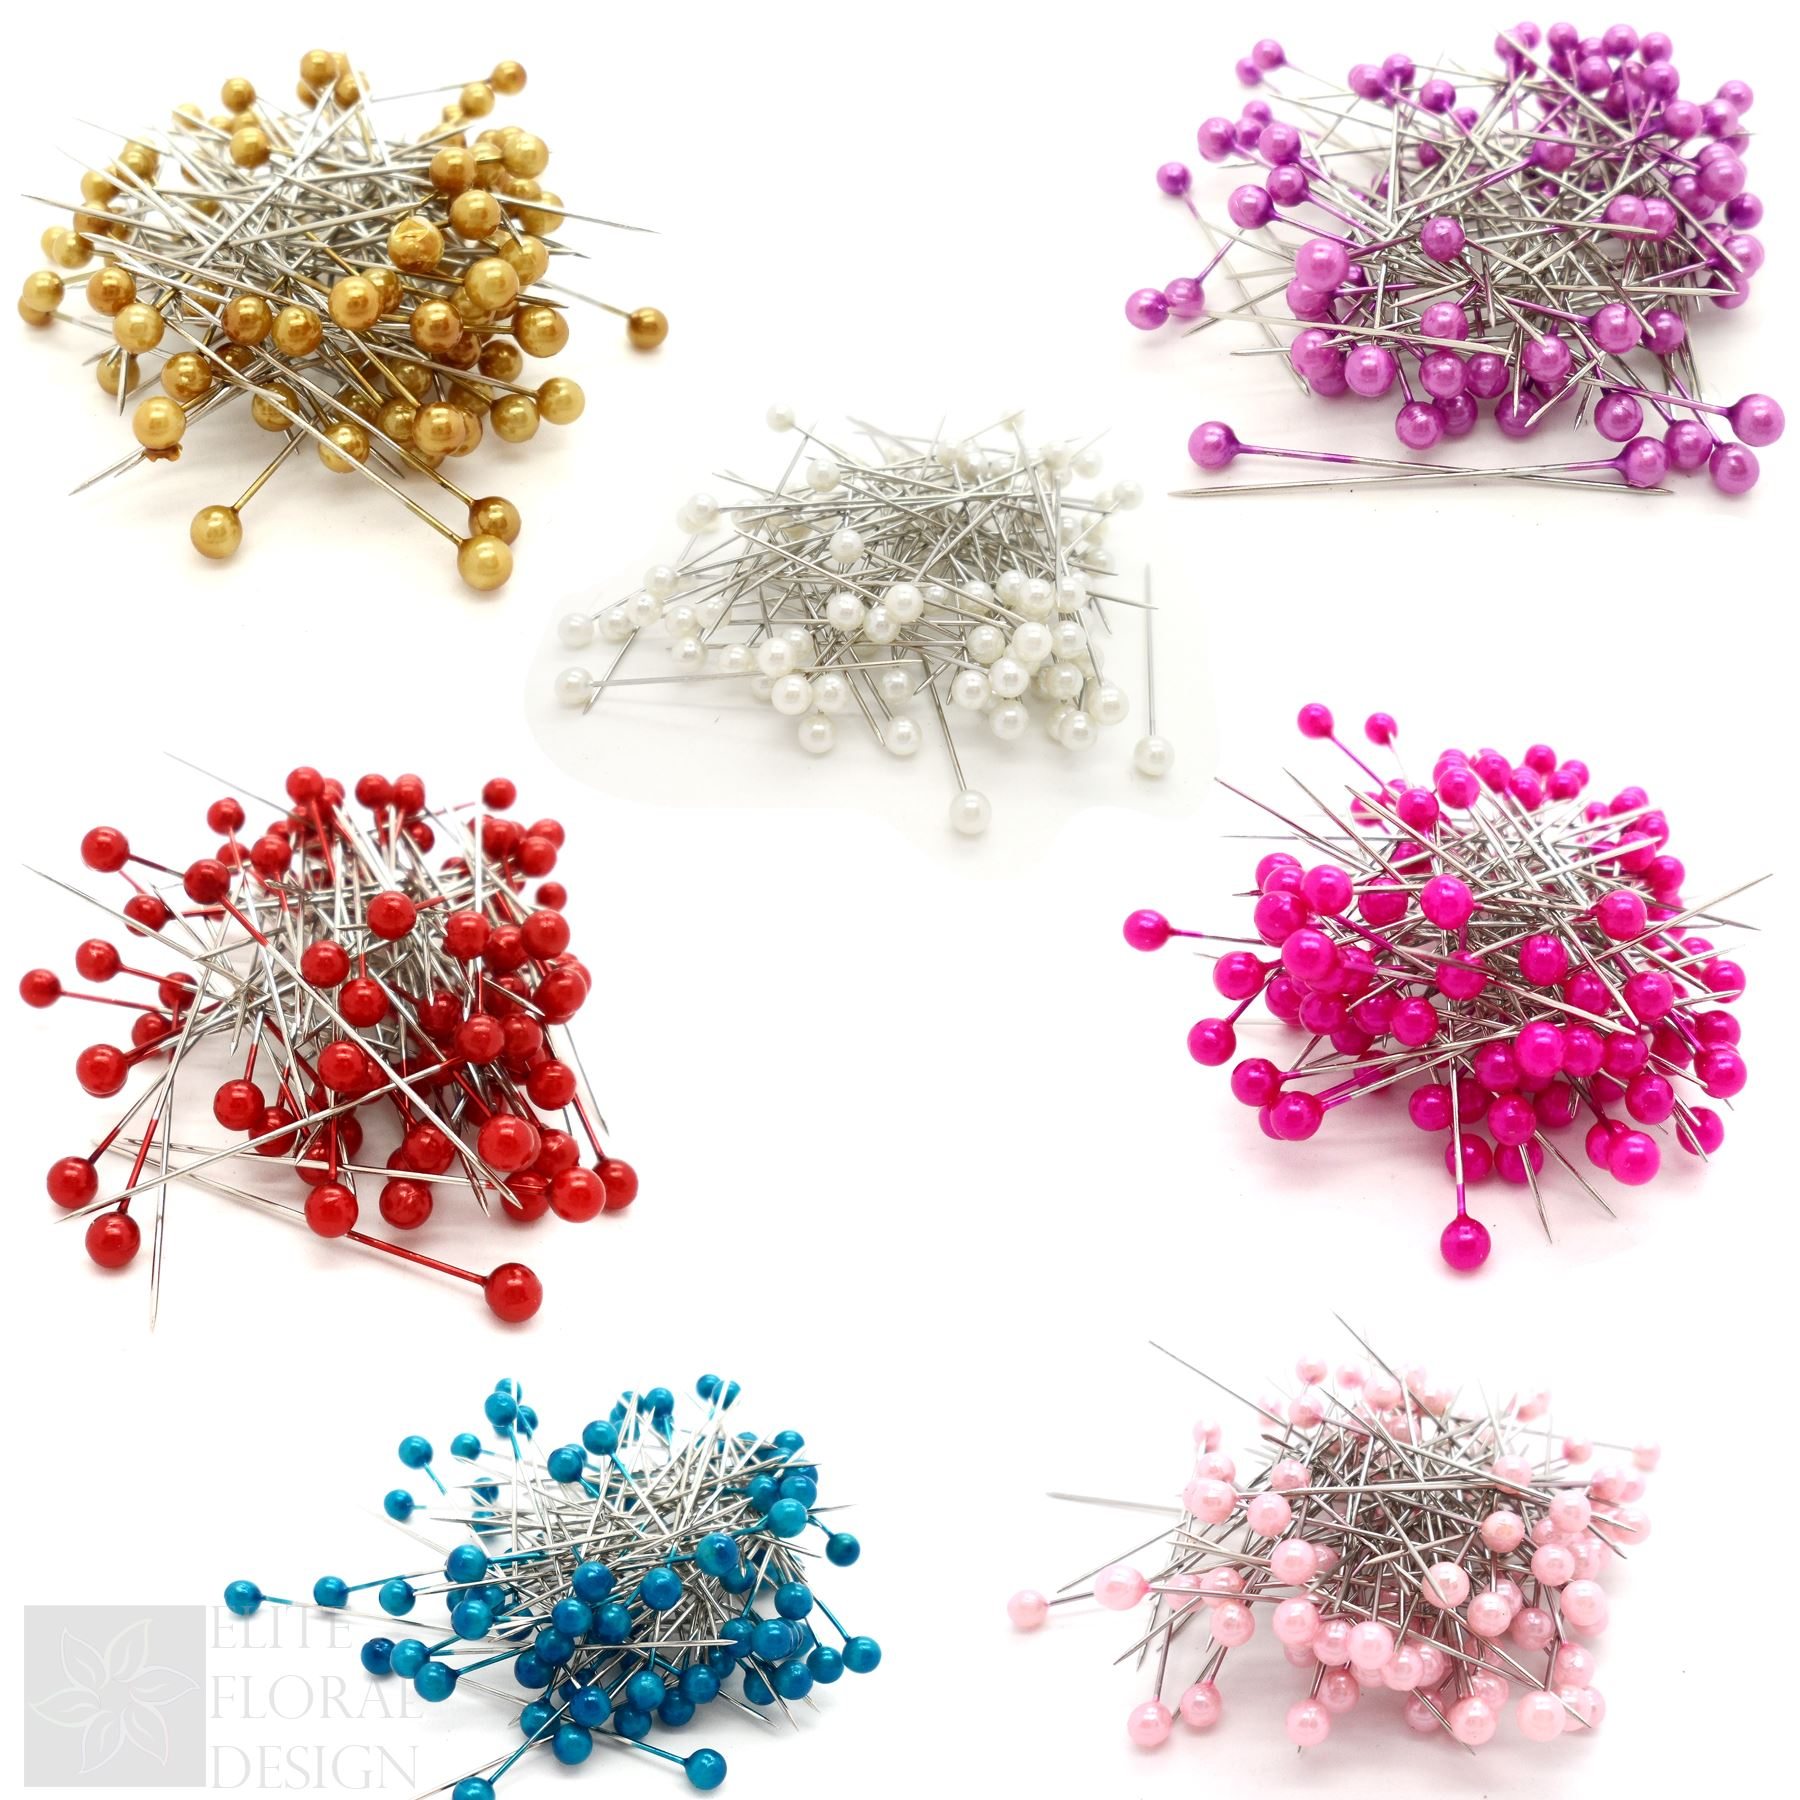 100 Pearl Pins Dress Making Crafts Corsage Florist Heads Bouquet Sewing Pins